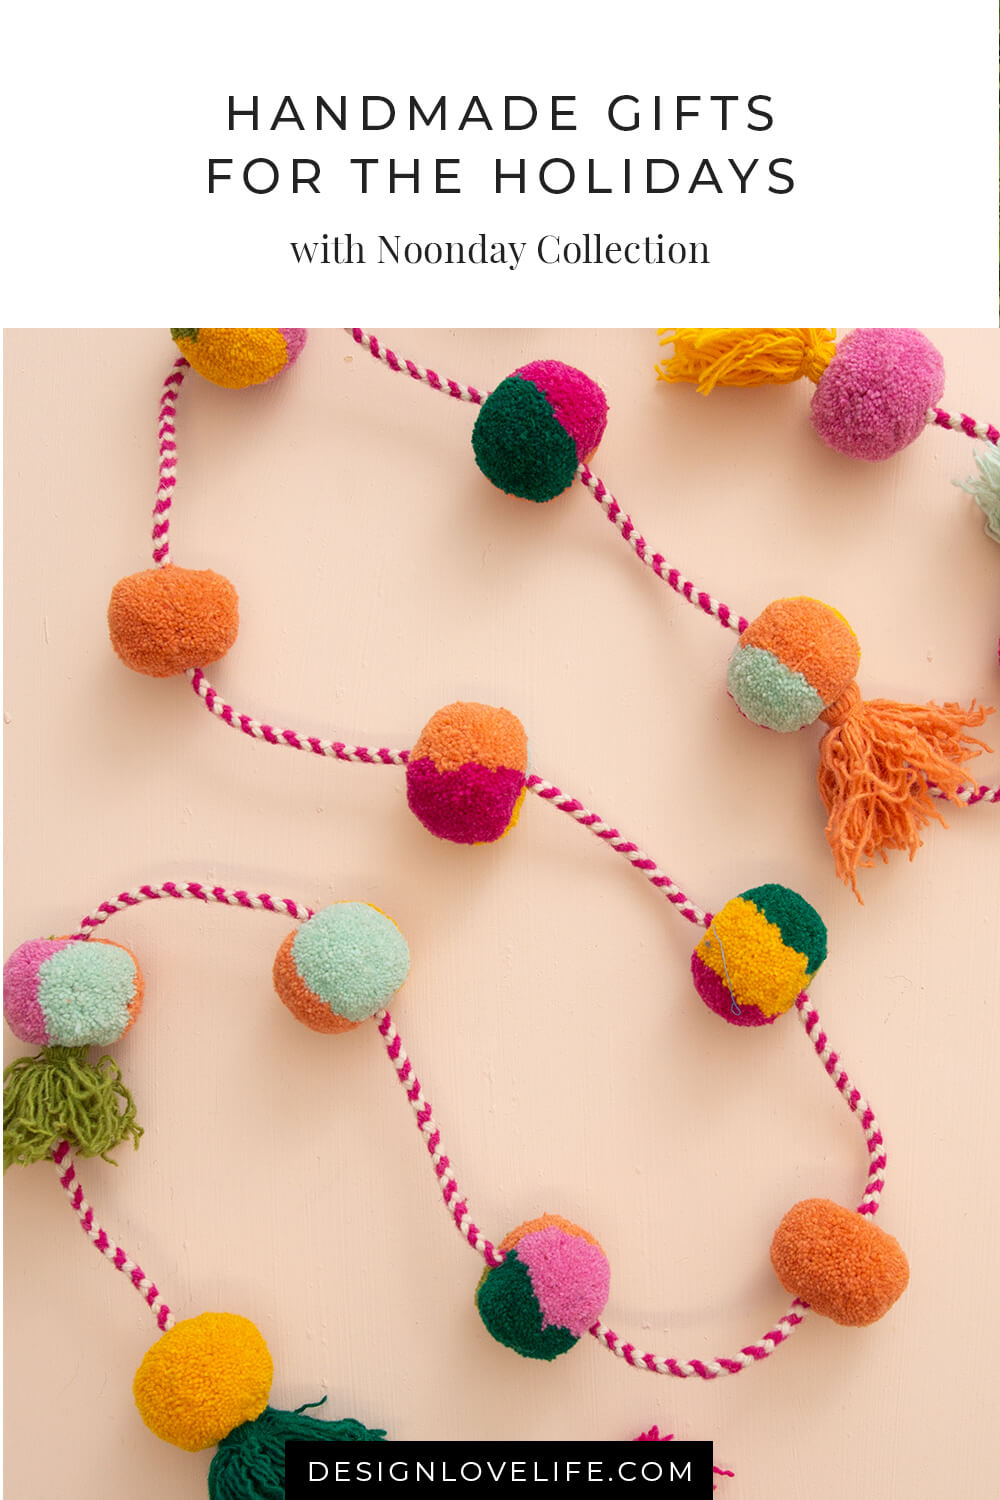 Handmade gifts for the holidays. This Peruvian-made garland is a festive way to brighten up your wall, mantle, or holiday tree. A year-round pop of color that adds a handmade touch to your home. Noonday Collection and Annie Johnson.